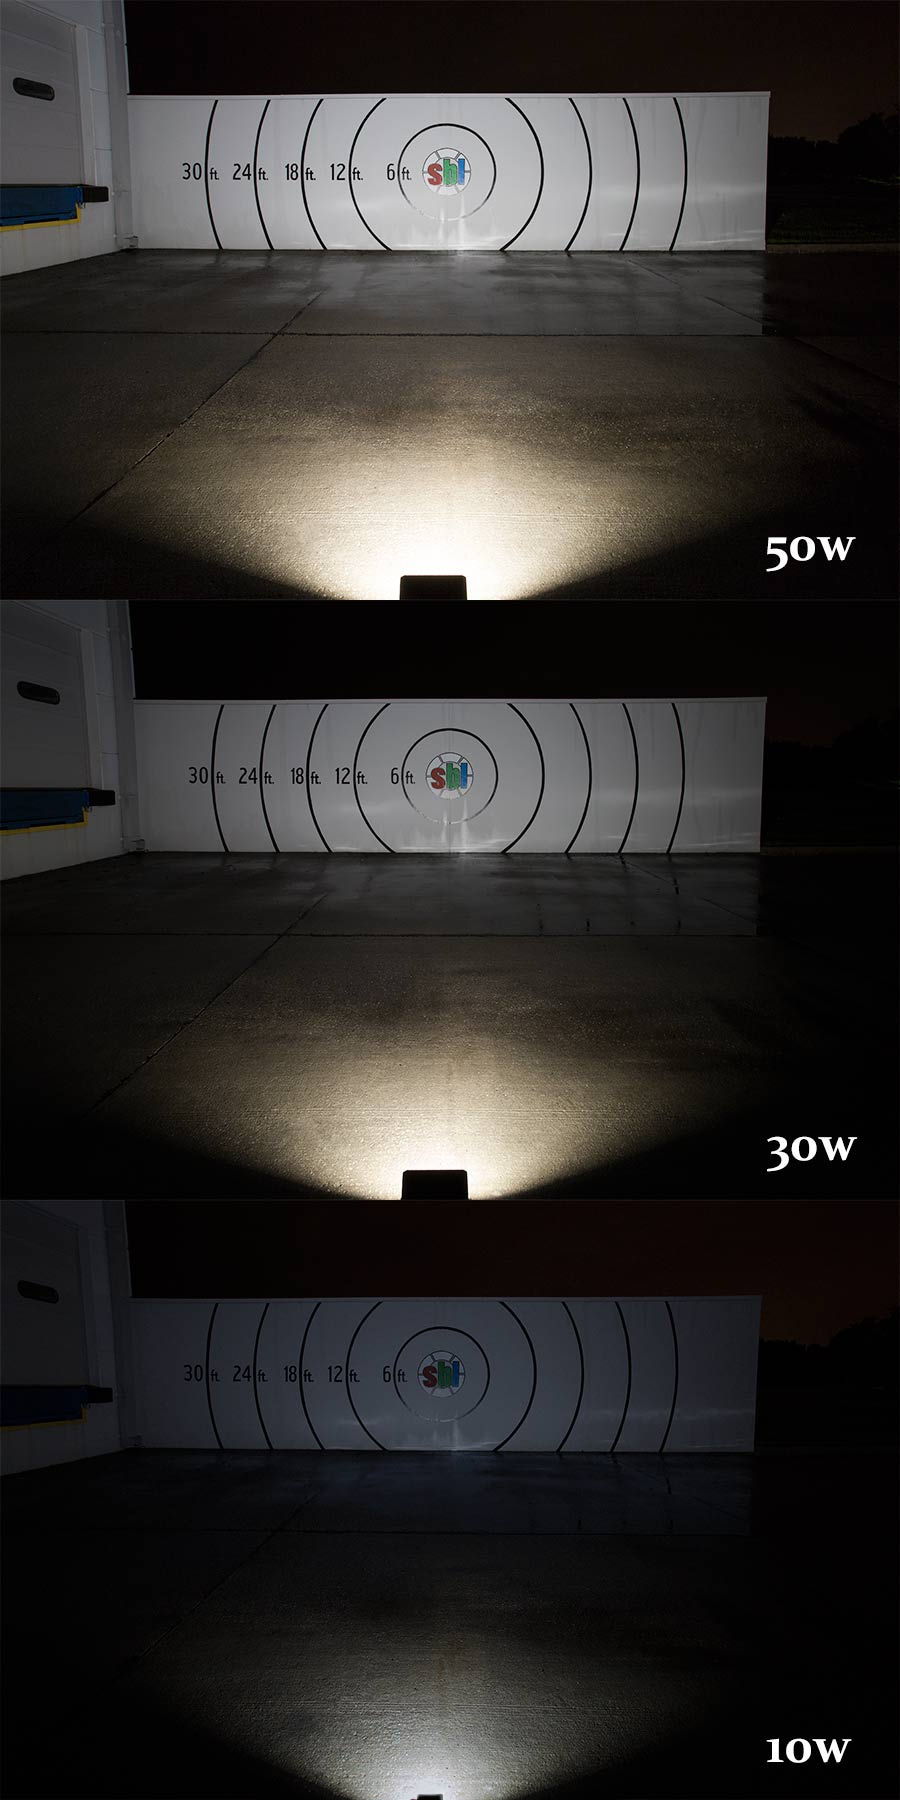 30 Watt LED Flood Light Fixture - Low Profile Showing Beam Patterns On Target From Approximately 25u0027. & 30 Watt LED Flood Light Fixture - Low Profile - 2500 Lumens | LED ... azcodes.com